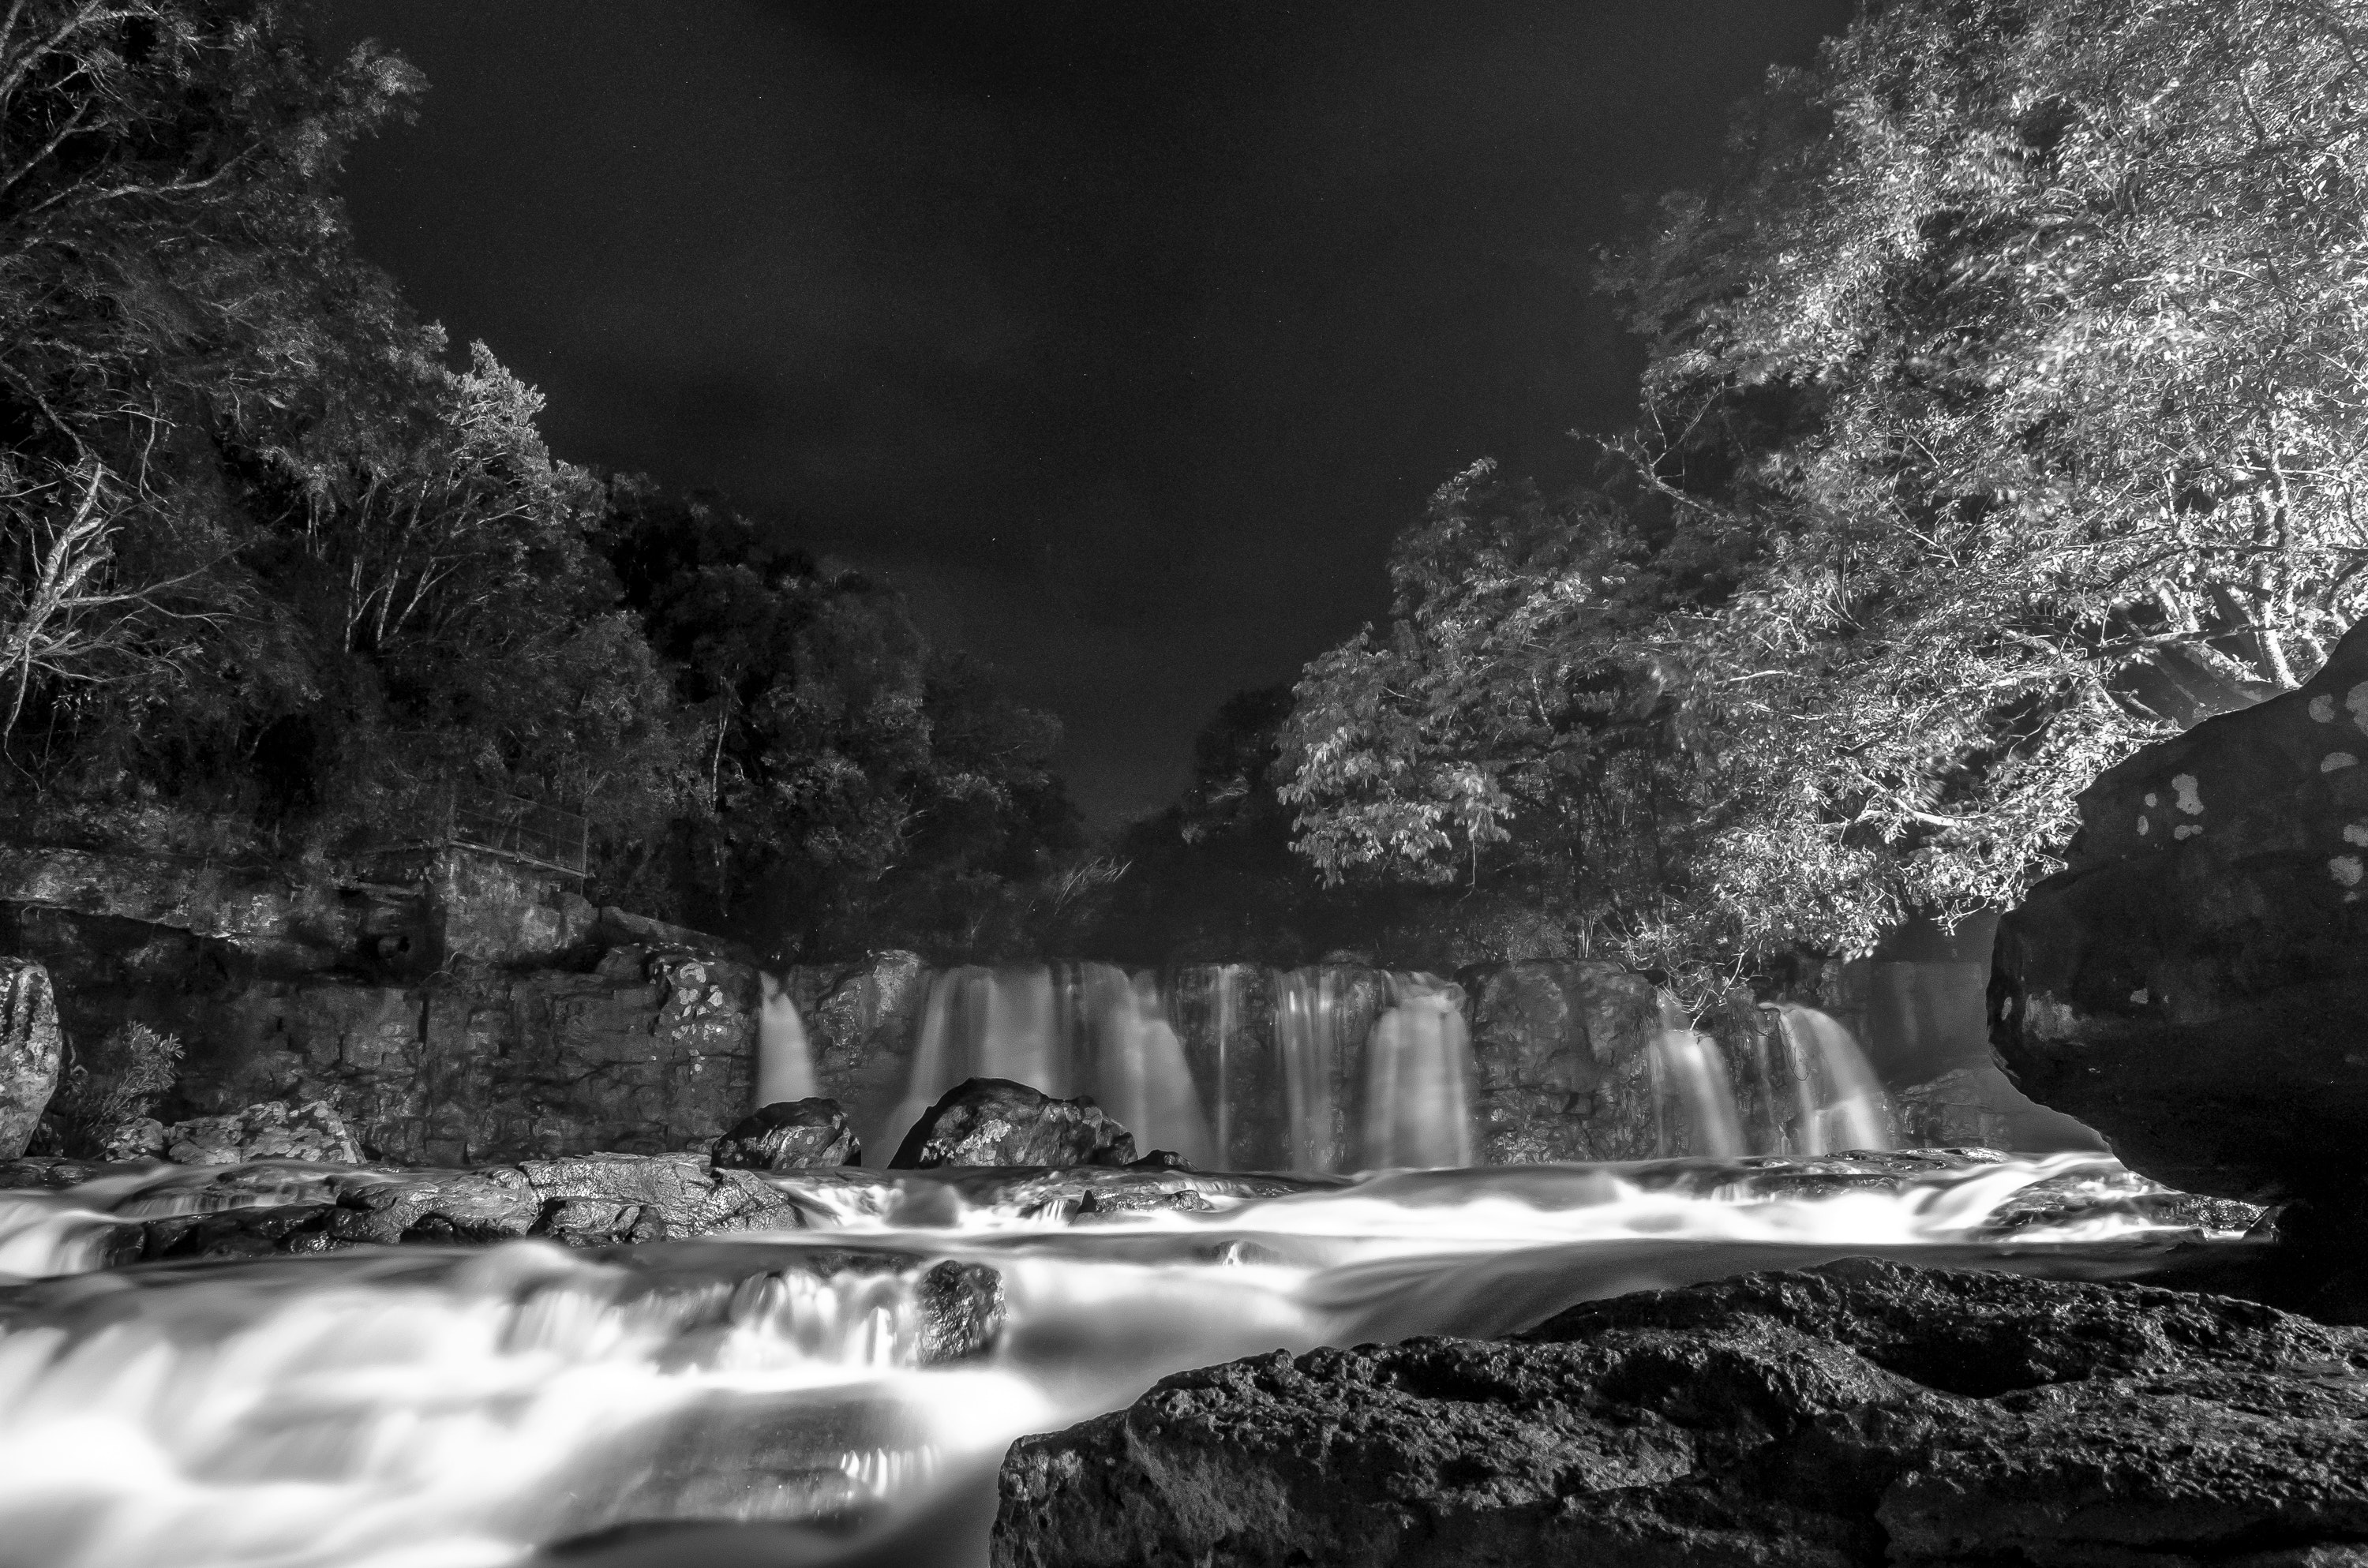 Greyscale Photo of Waterfall during Nighttime, Black-and-white, Cascade, Landscape, Nature, HQ Photo